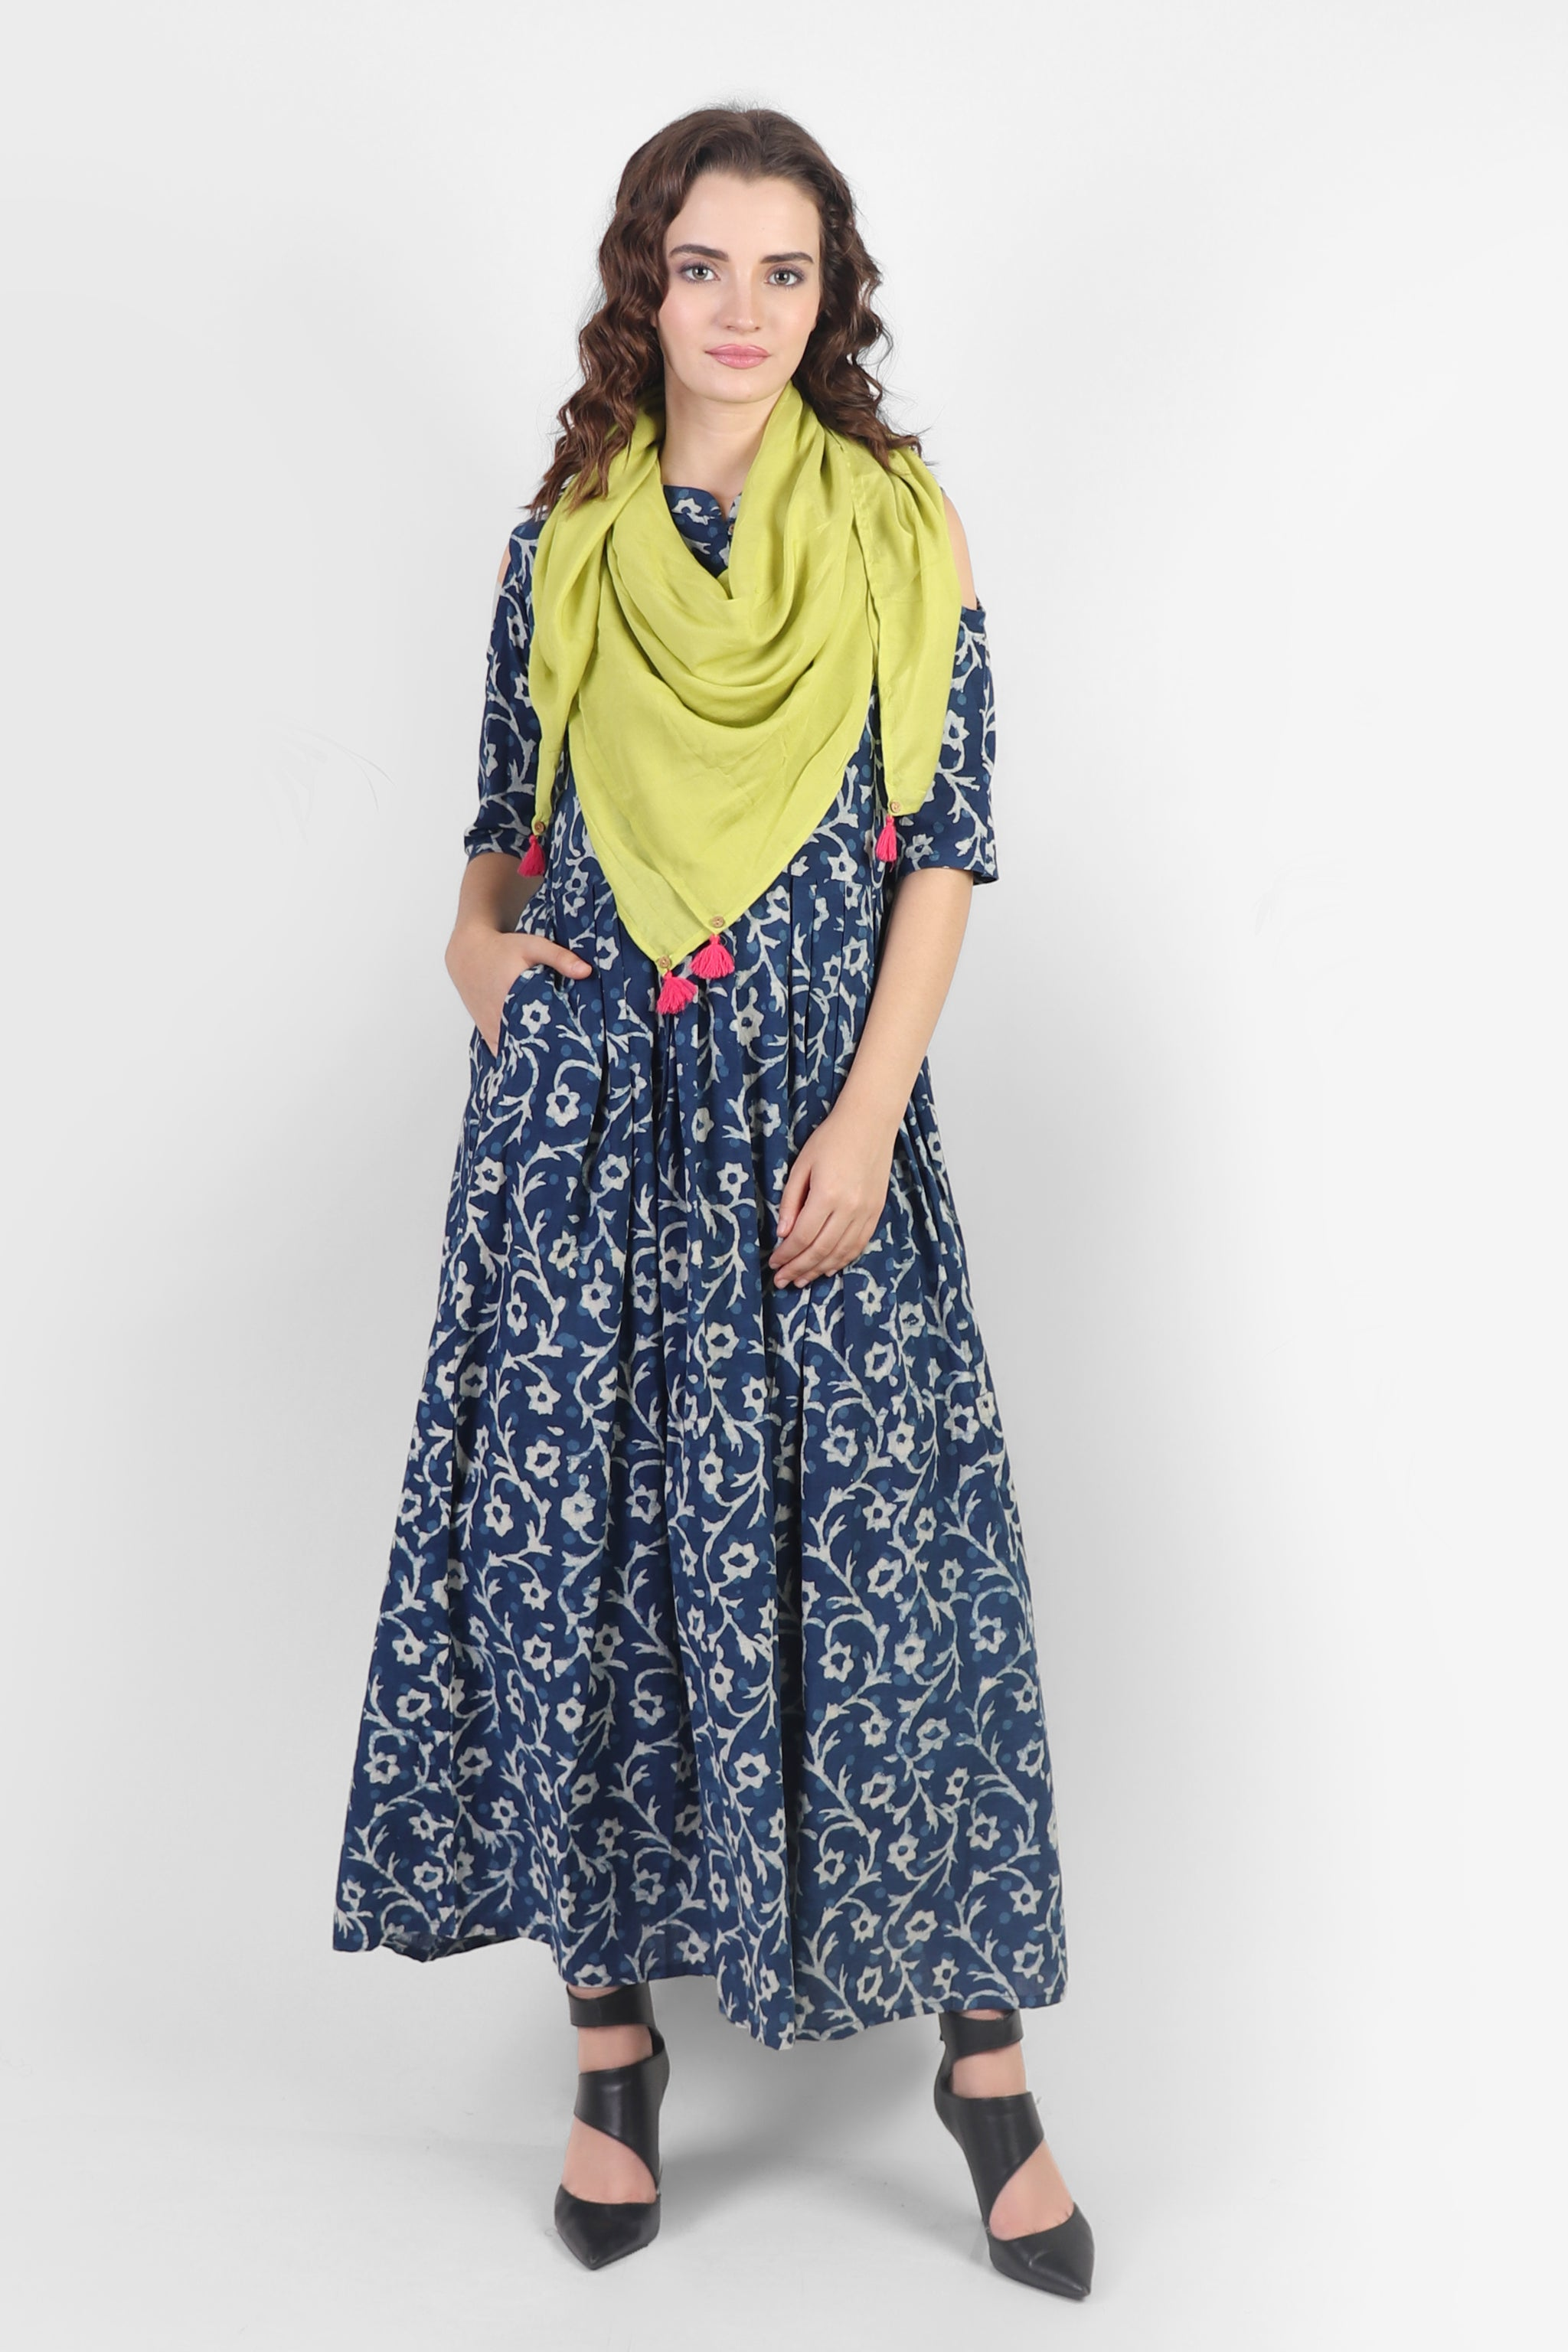 Floral Fiesta  Dress with pockets and scarf